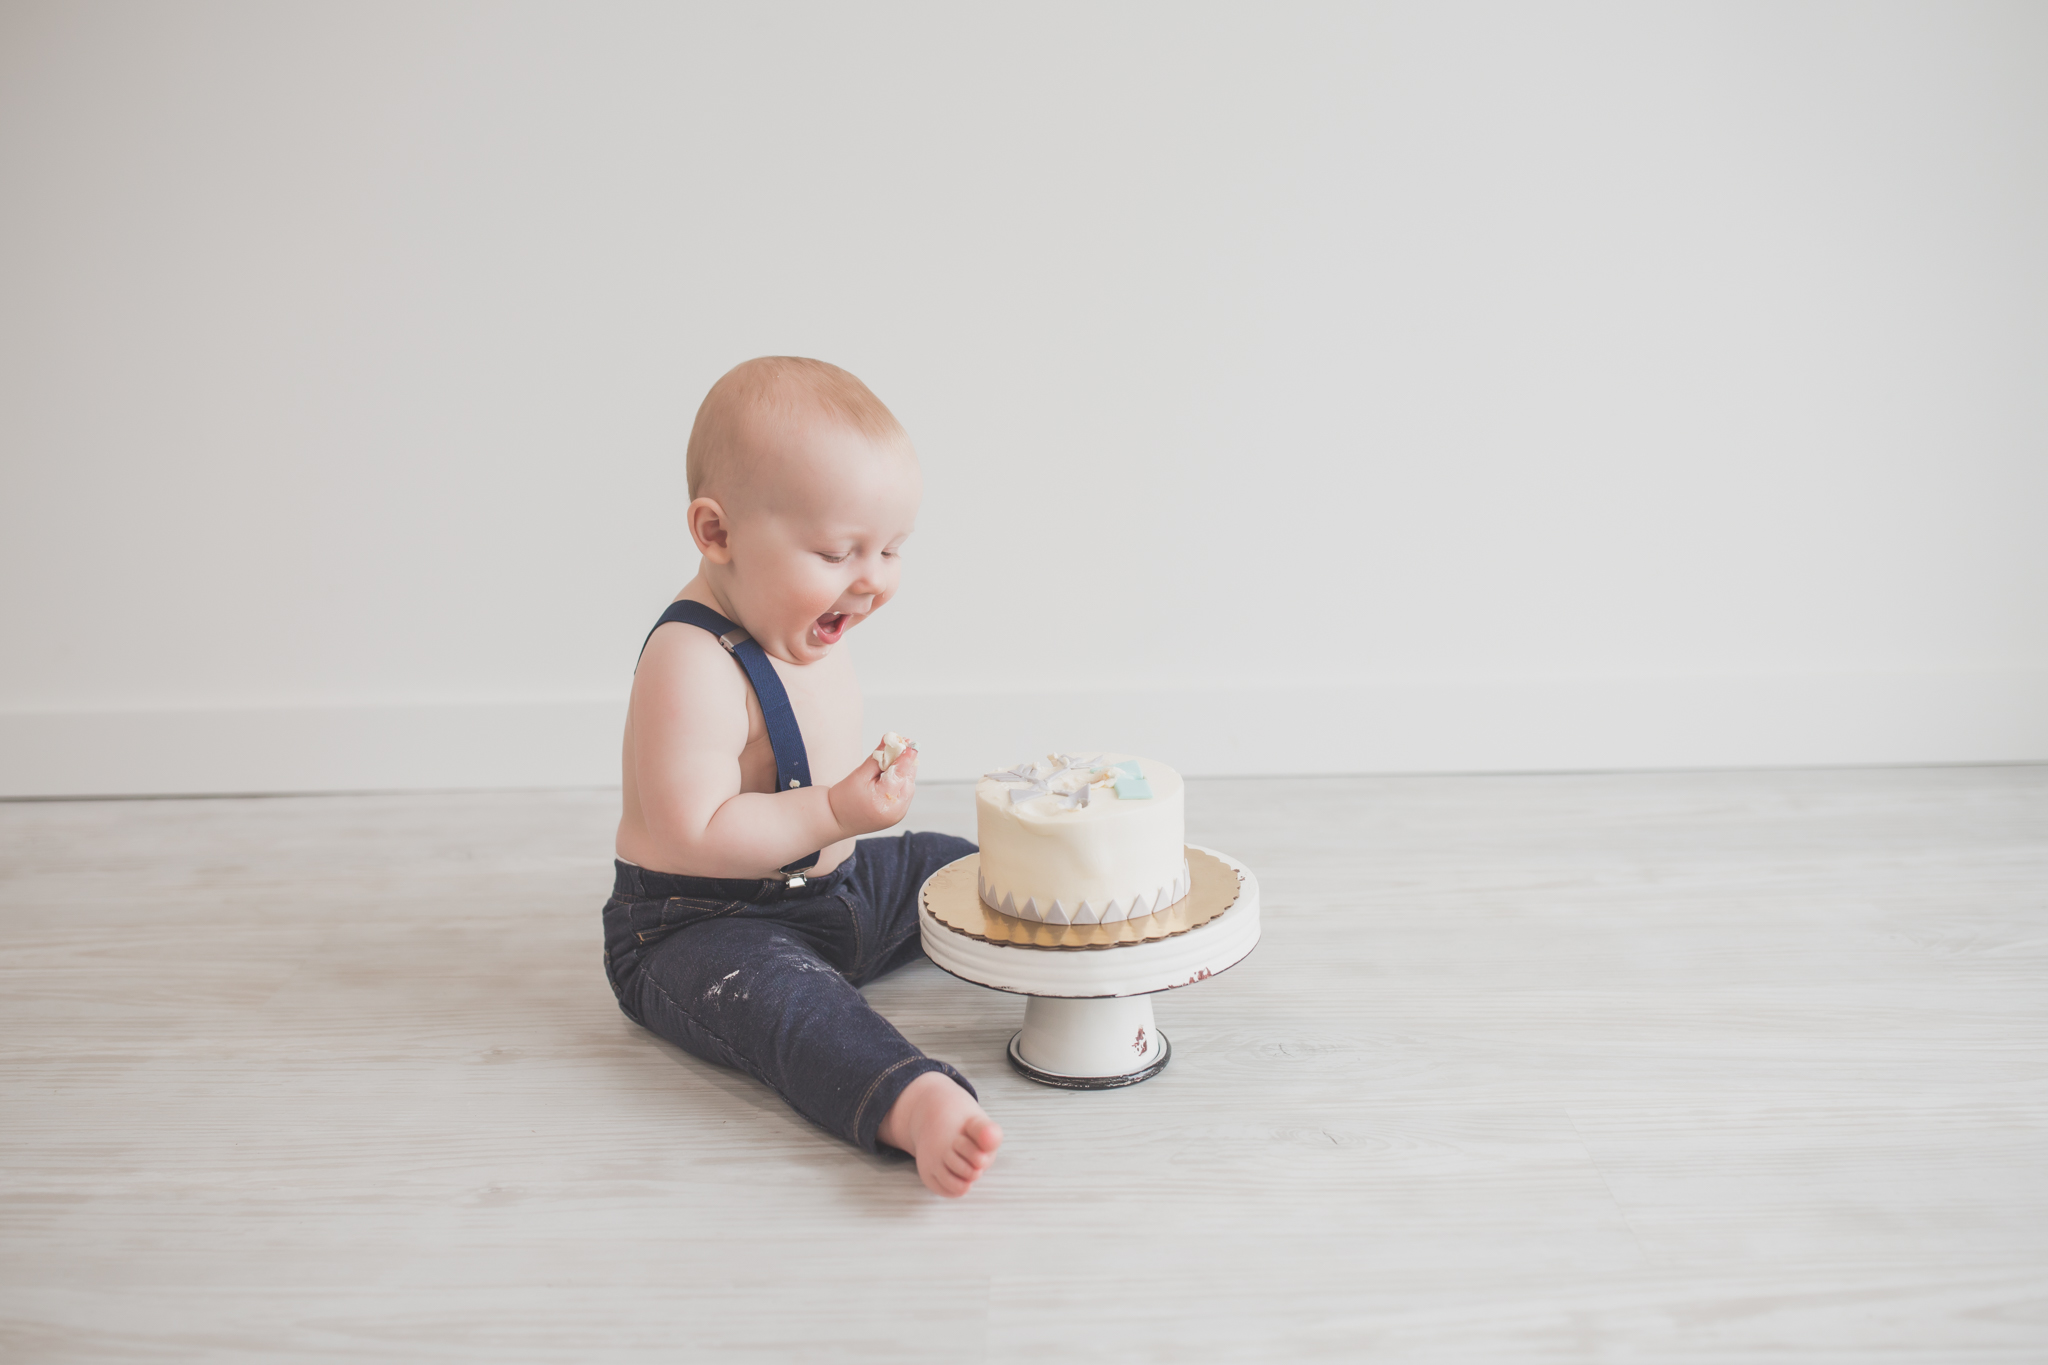 Cade 1 Year Old Cake Smash Milestone Session Cara Peterson Photography Rockford IL -27.jpg